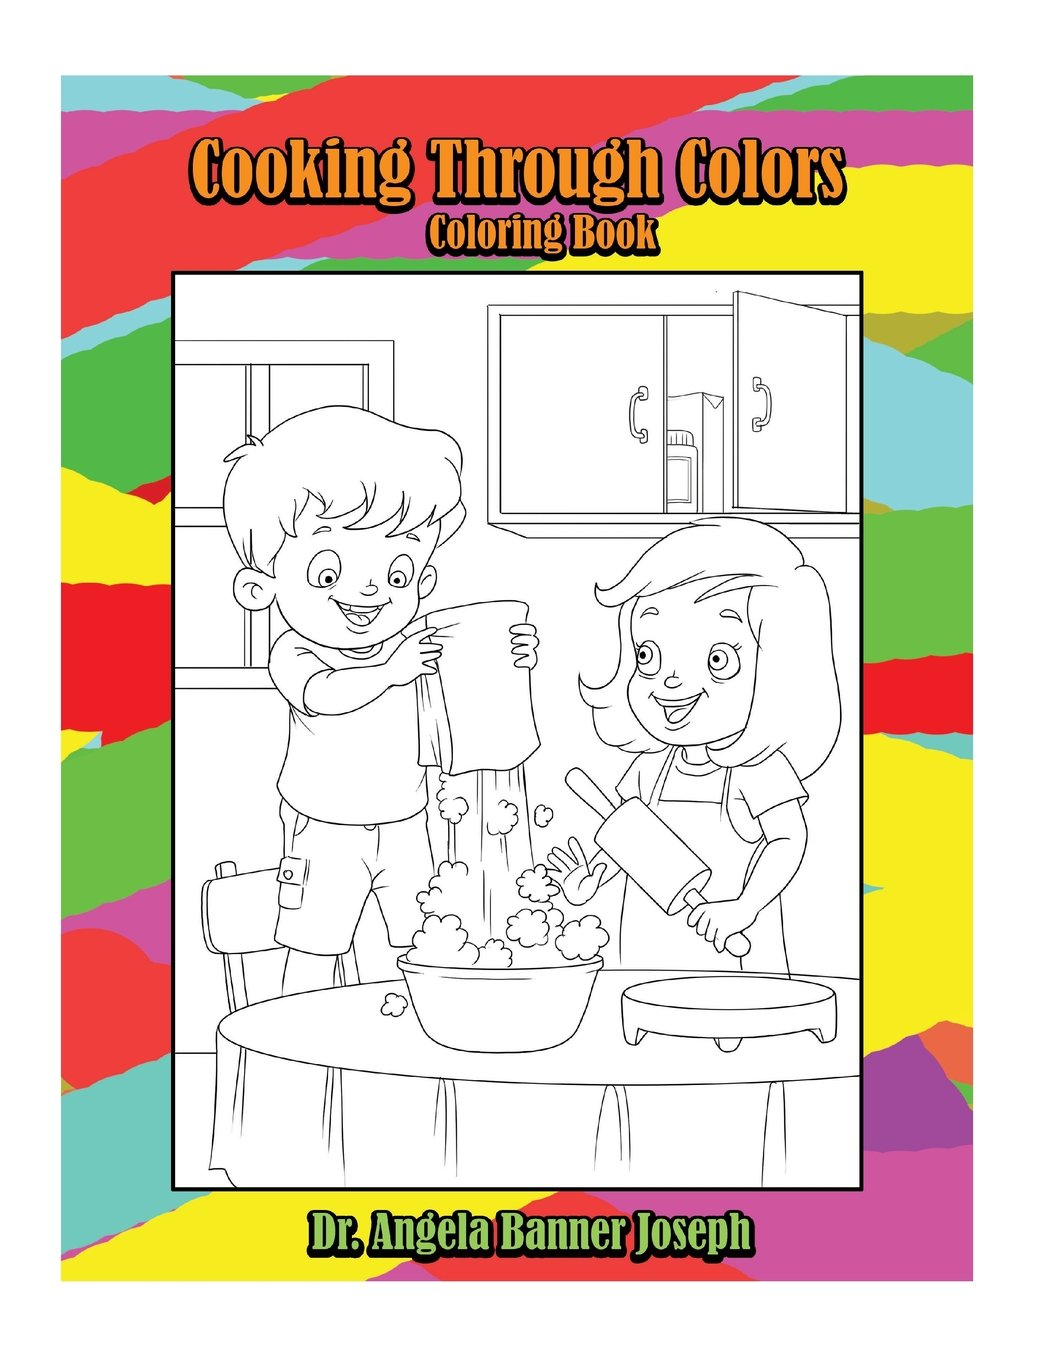 - Amazon.com: Cooking Through Colors Coloring Book (9781943945108